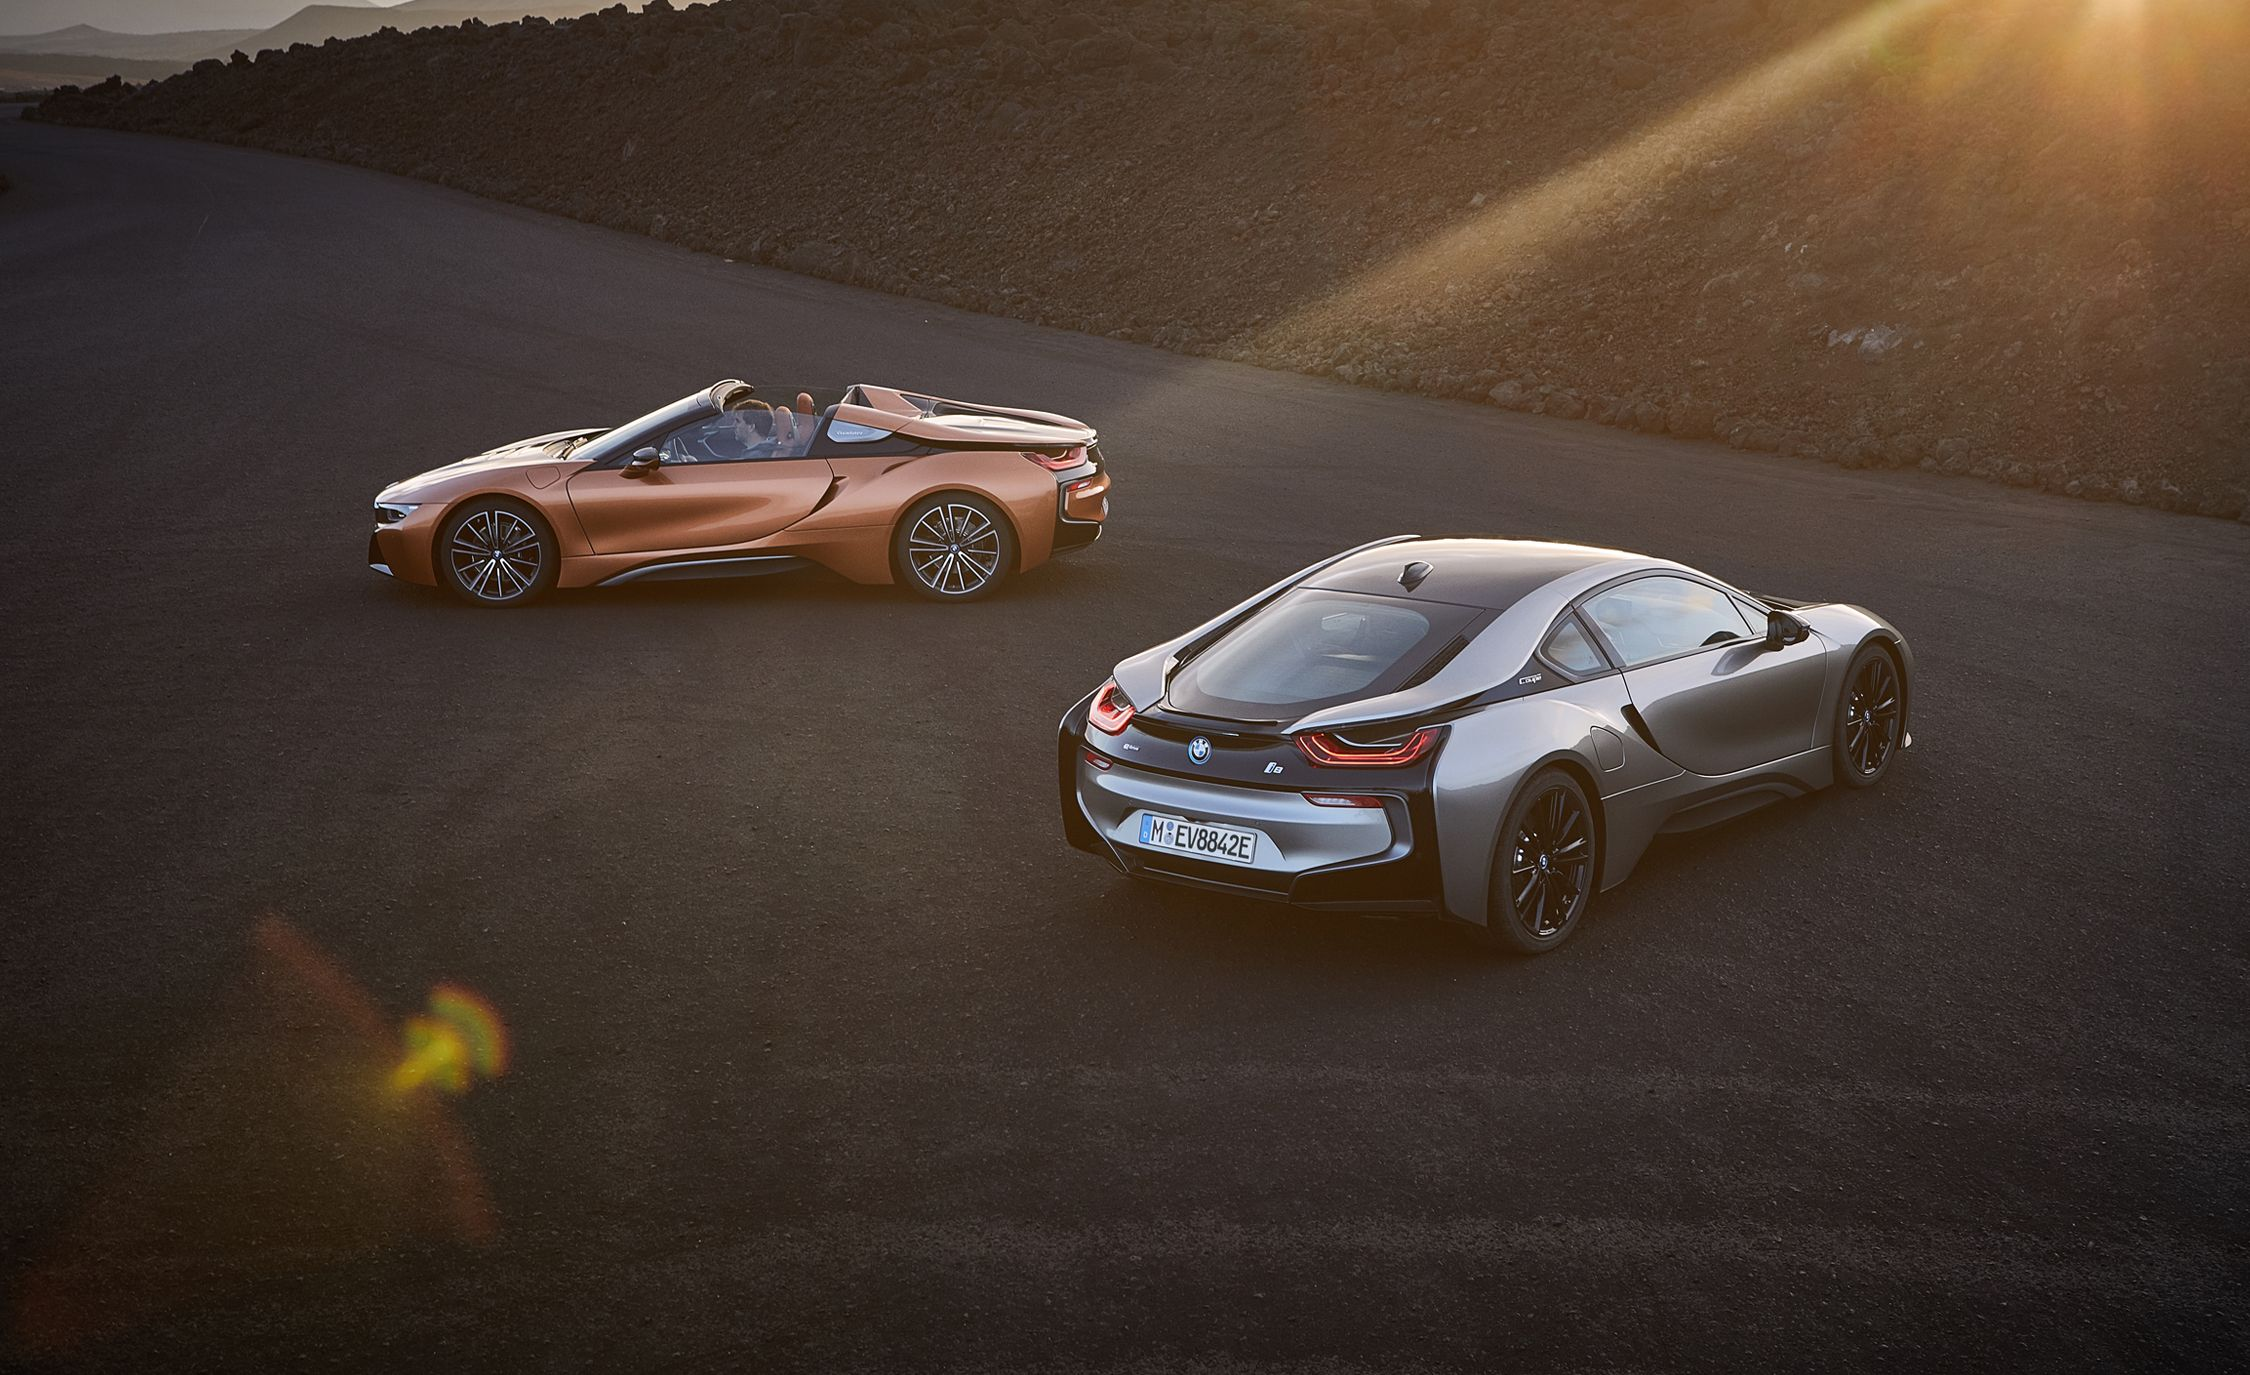 2019 Bmw I8 Roadster Photos And Info News Car And Driver